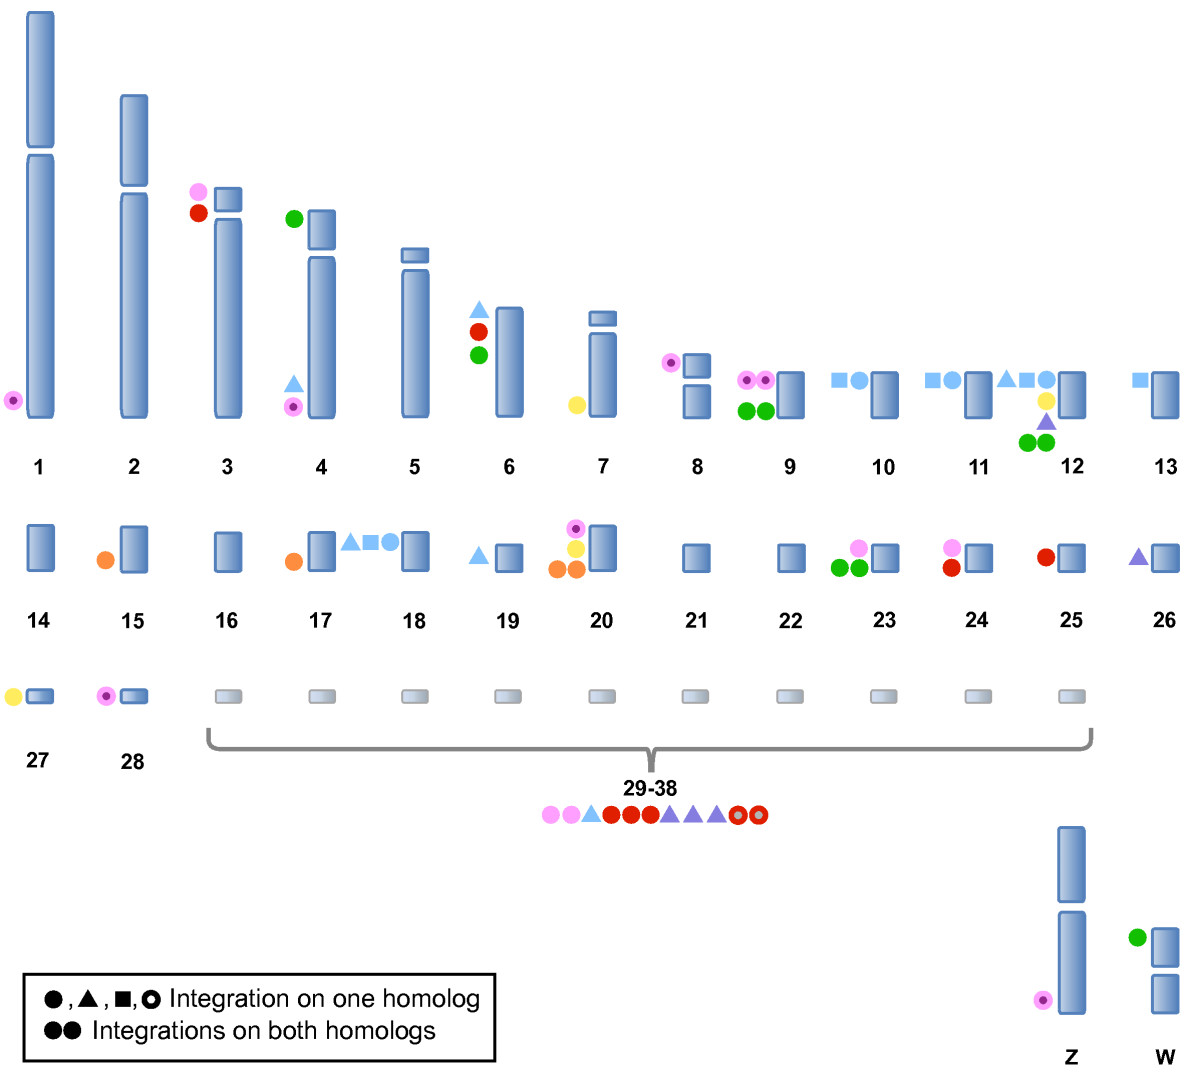 http://static-content.springer.com/image/art%3A10.1186%2F2042-4280-1-5/MediaObjects/13276_2010_Article_5_Fig5_HTML.jpg